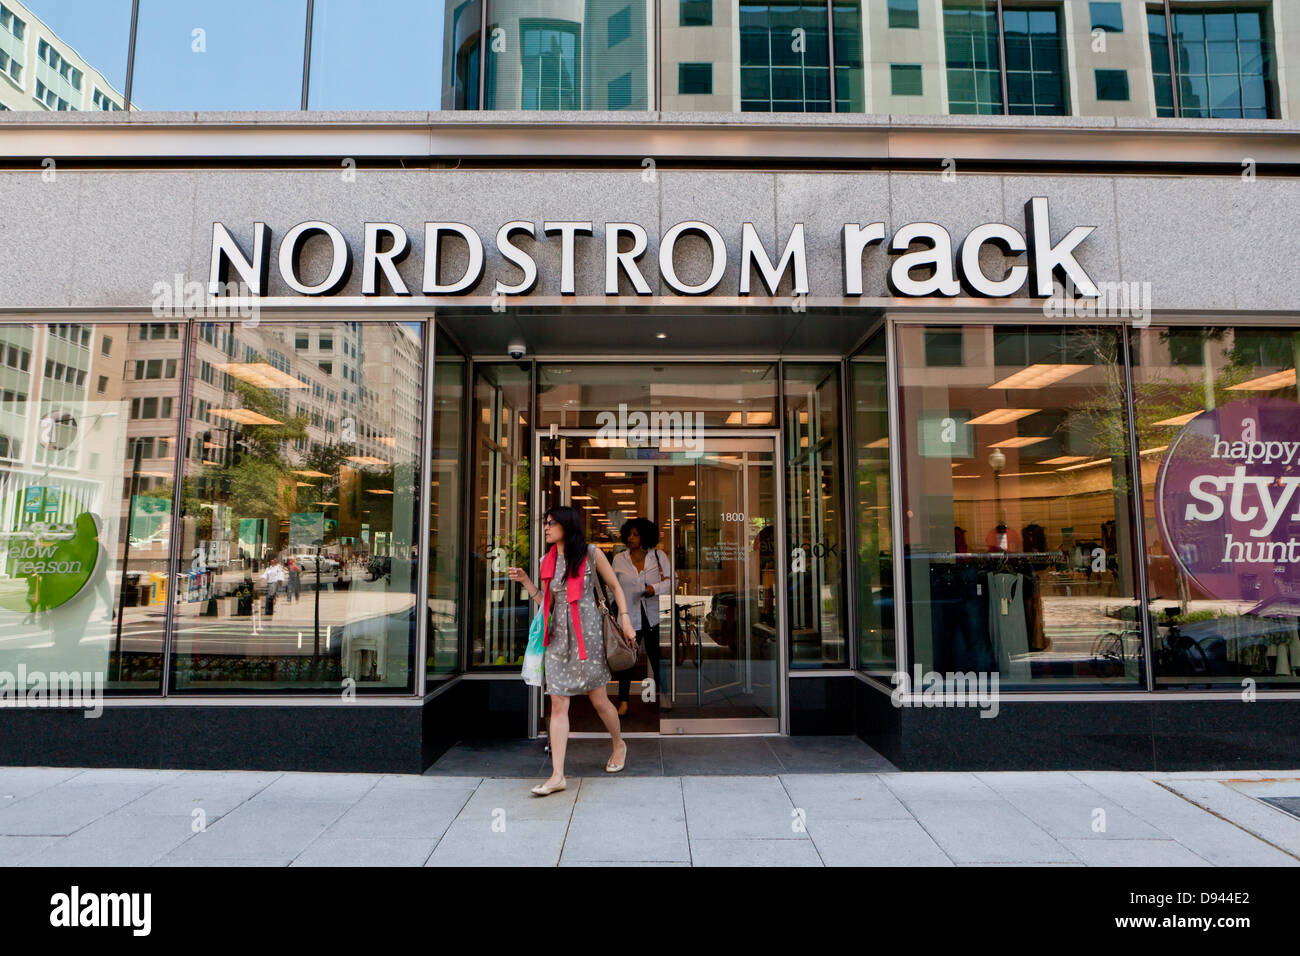 Nordstrom Rack Stock Photos & Nordstrom Rack Stock Images - Alamy